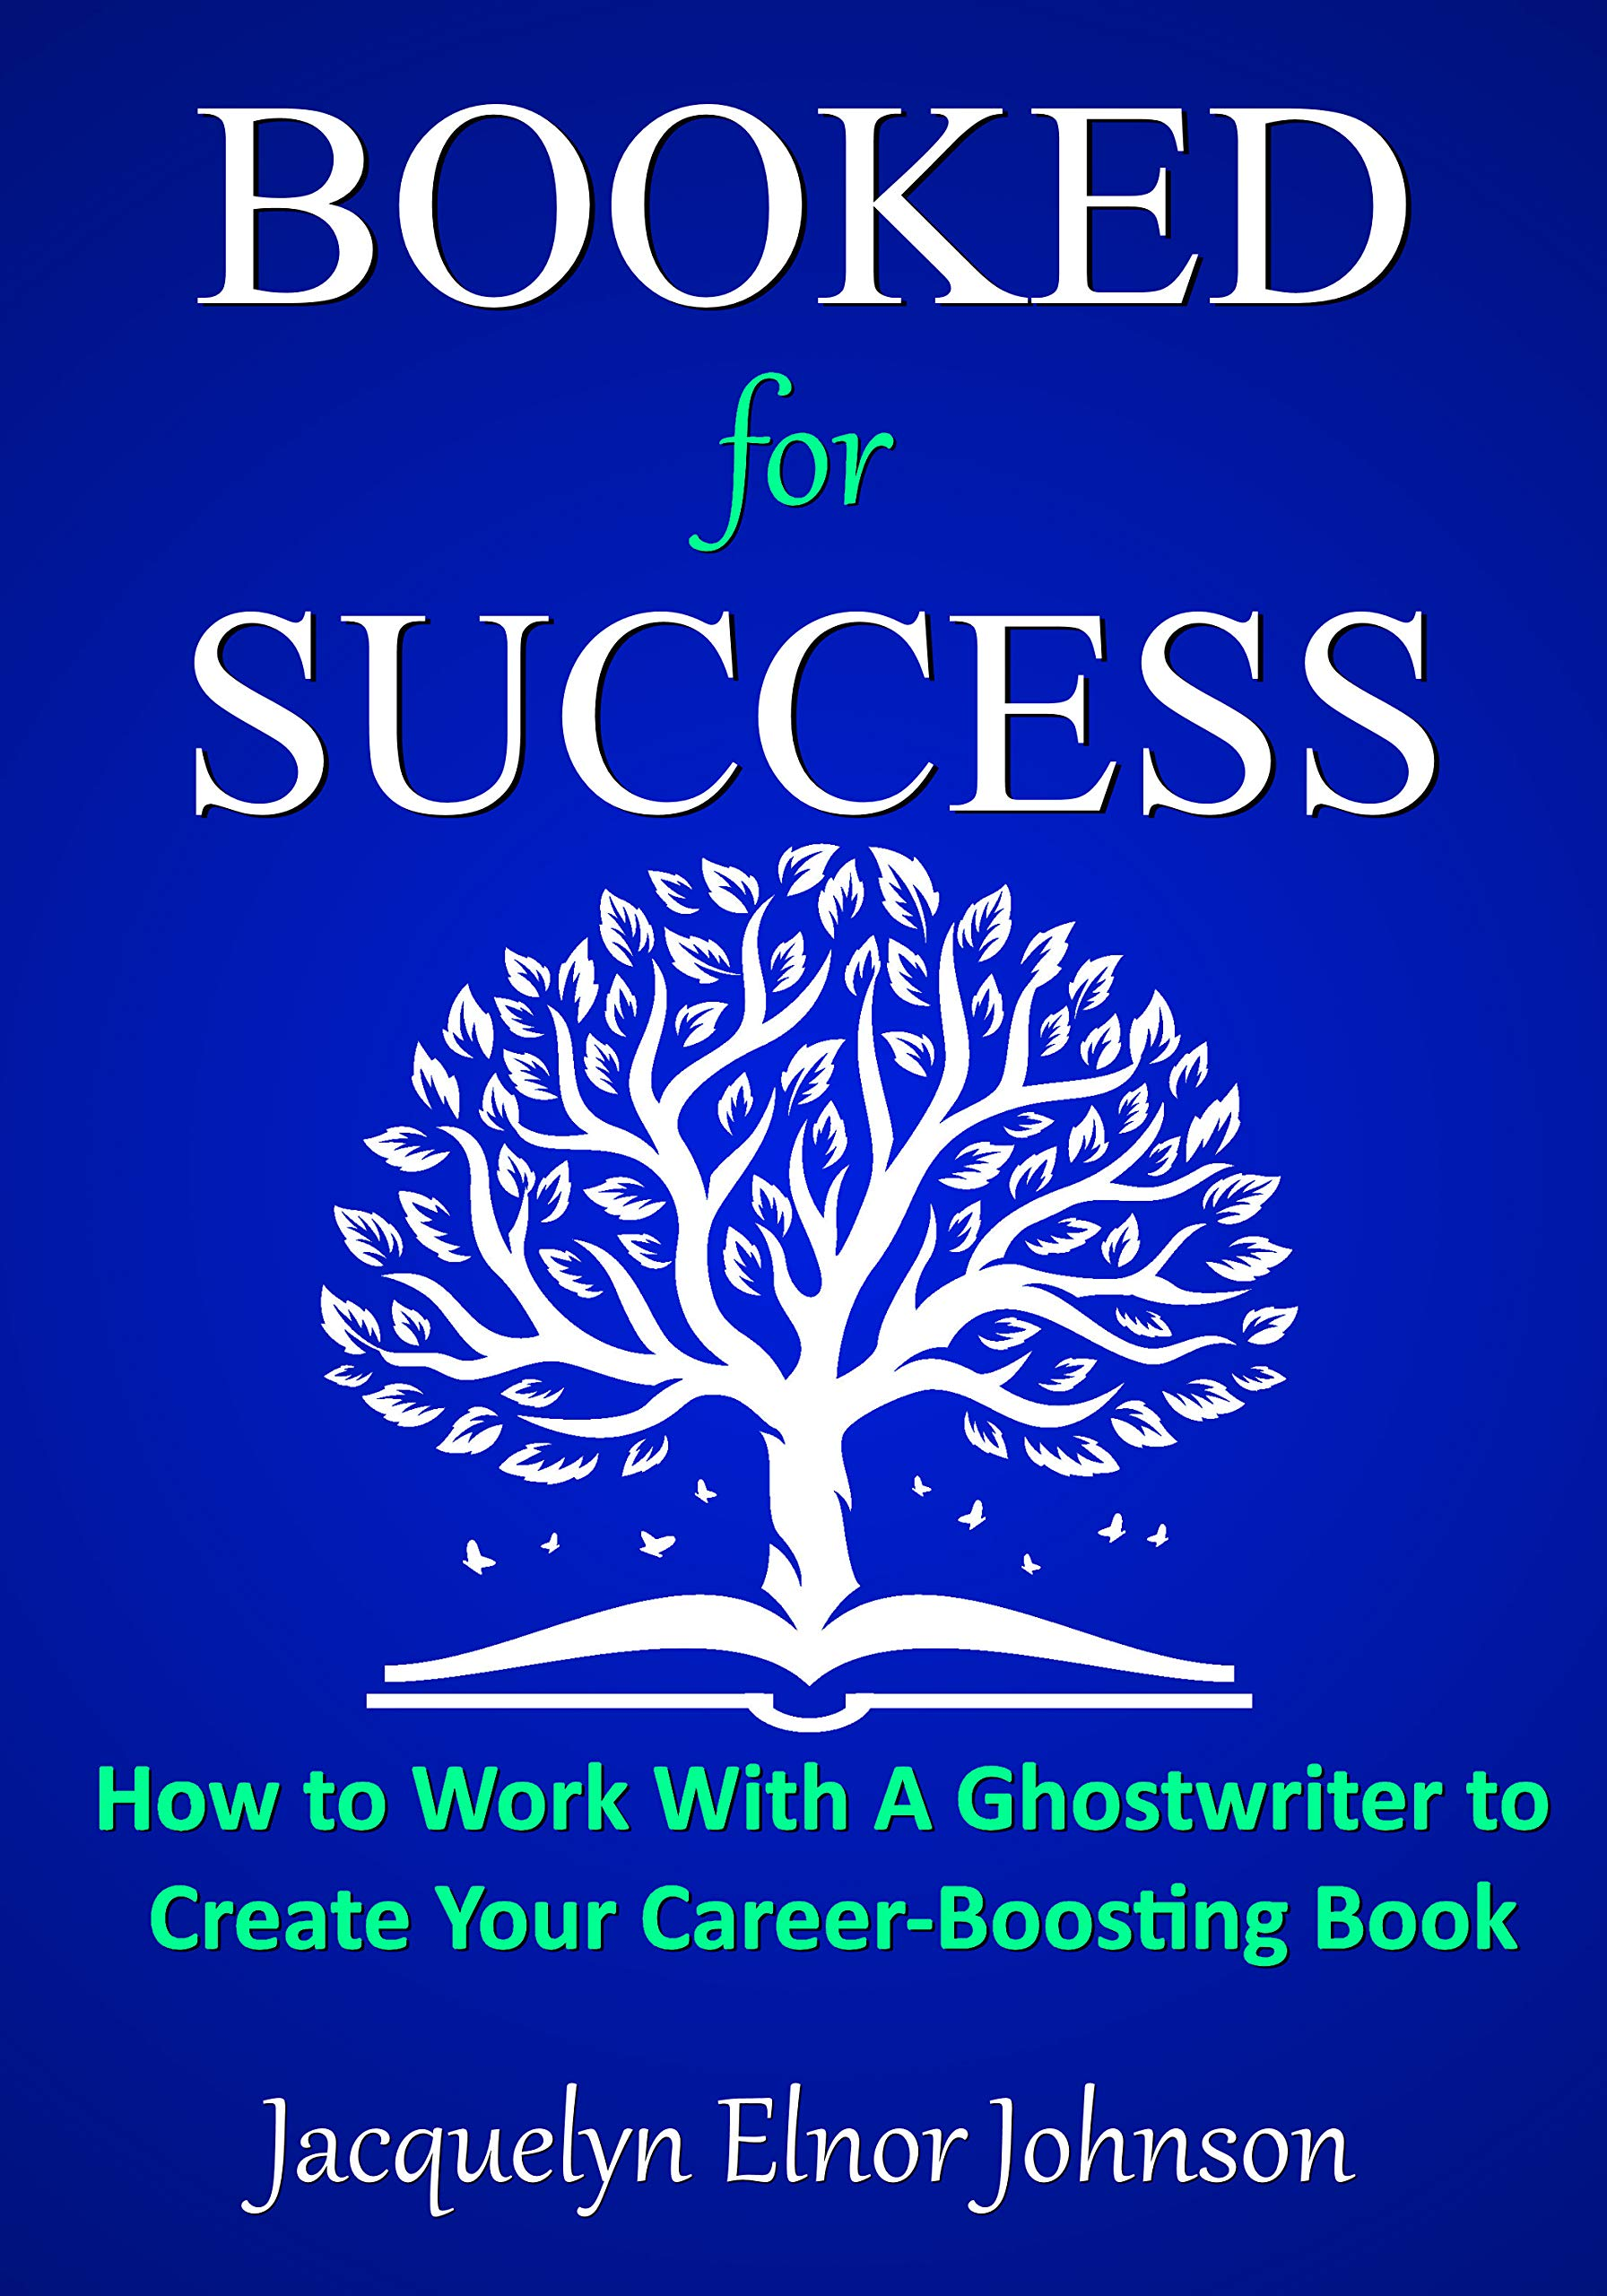 Booked for Success: How to Work With A Ghostwriter To Create Your Book